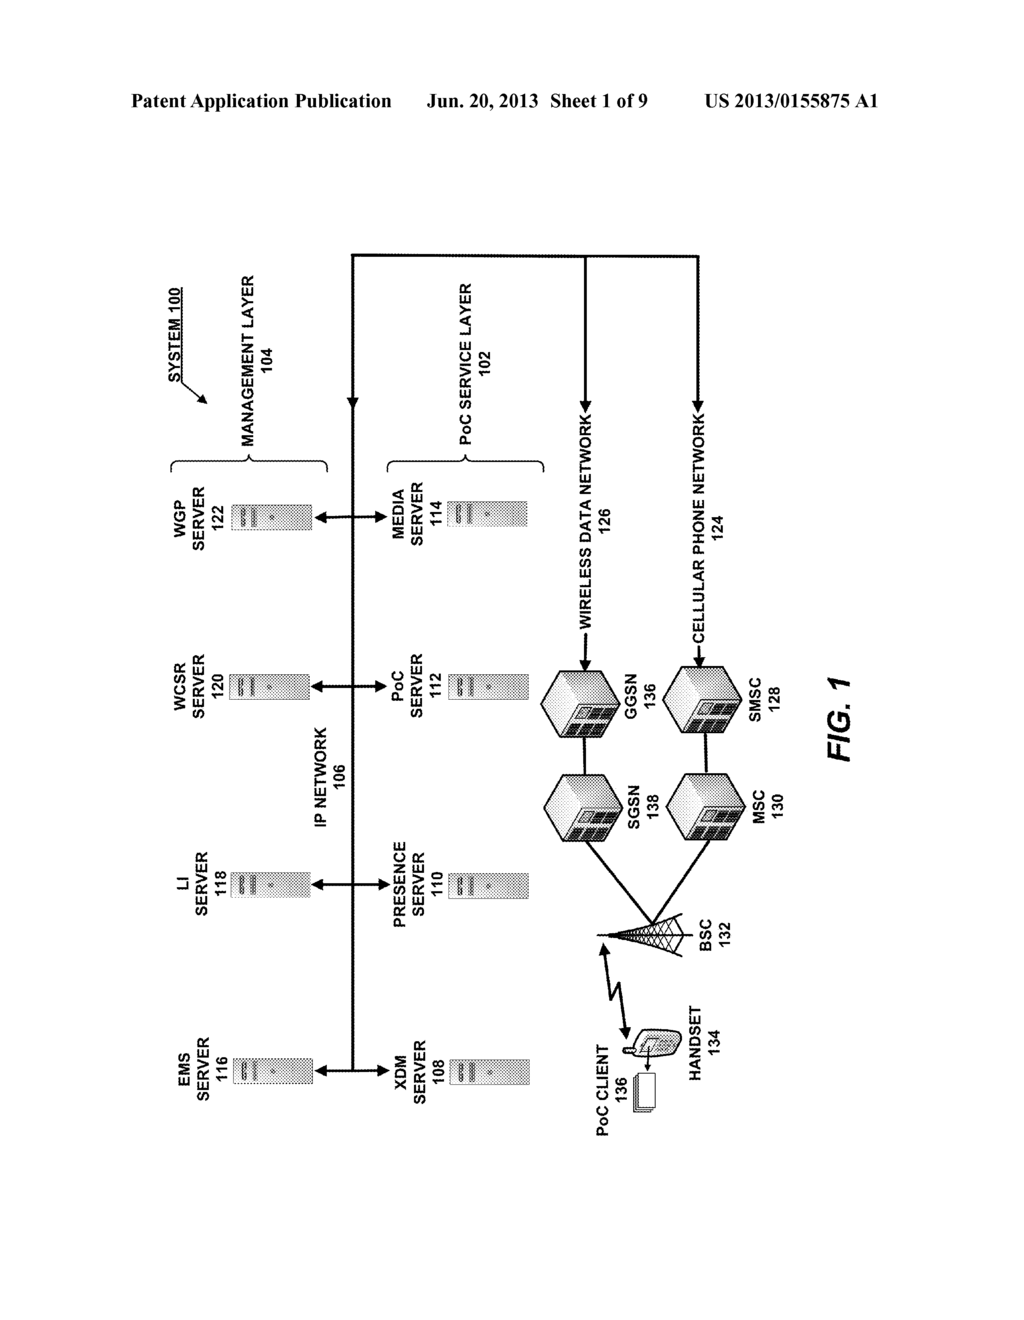 push to talk over cellular poc diagram schematic and image 02 rh patentsencyclopedia com Circuit Schematic Symbols Circuit Schematic Symbols